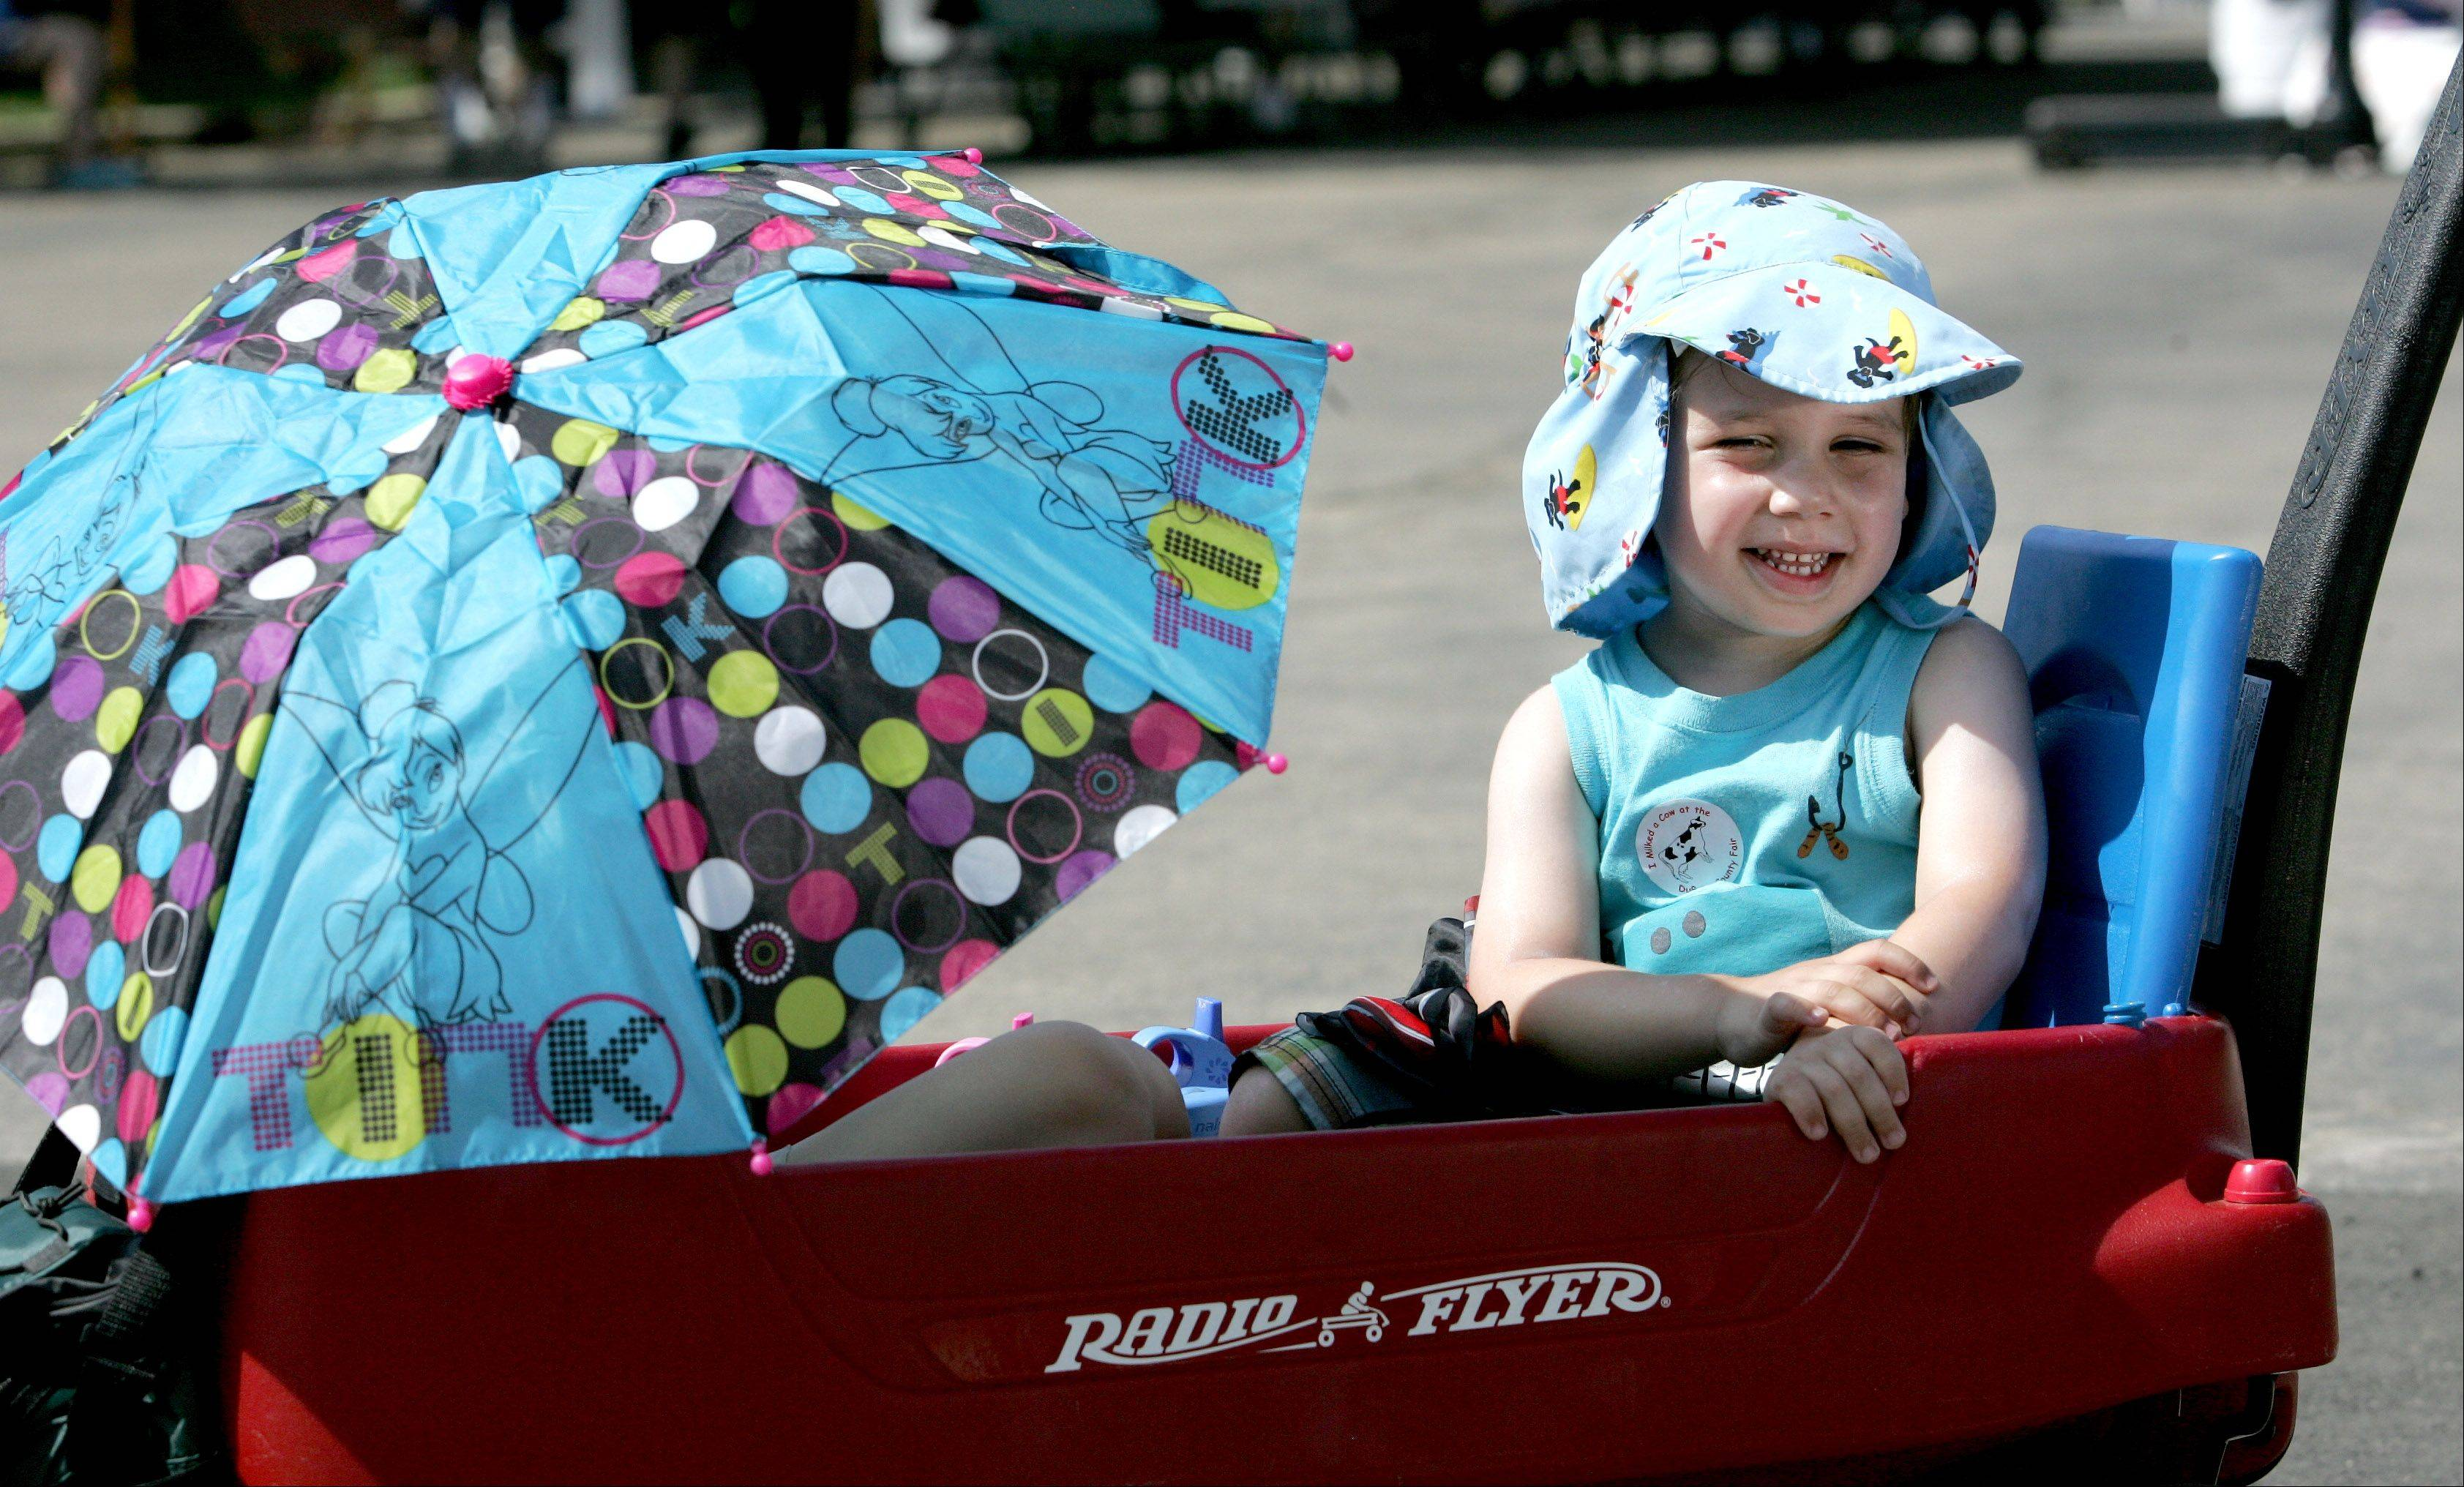 Matthew Jaeger, 3, of Glen Ellyn gets a ride in a wagon with his sister Angela, 4, shading herself under an umbrella, during the opening day of the DuPage County Fair in Wheaton on Wednesday.